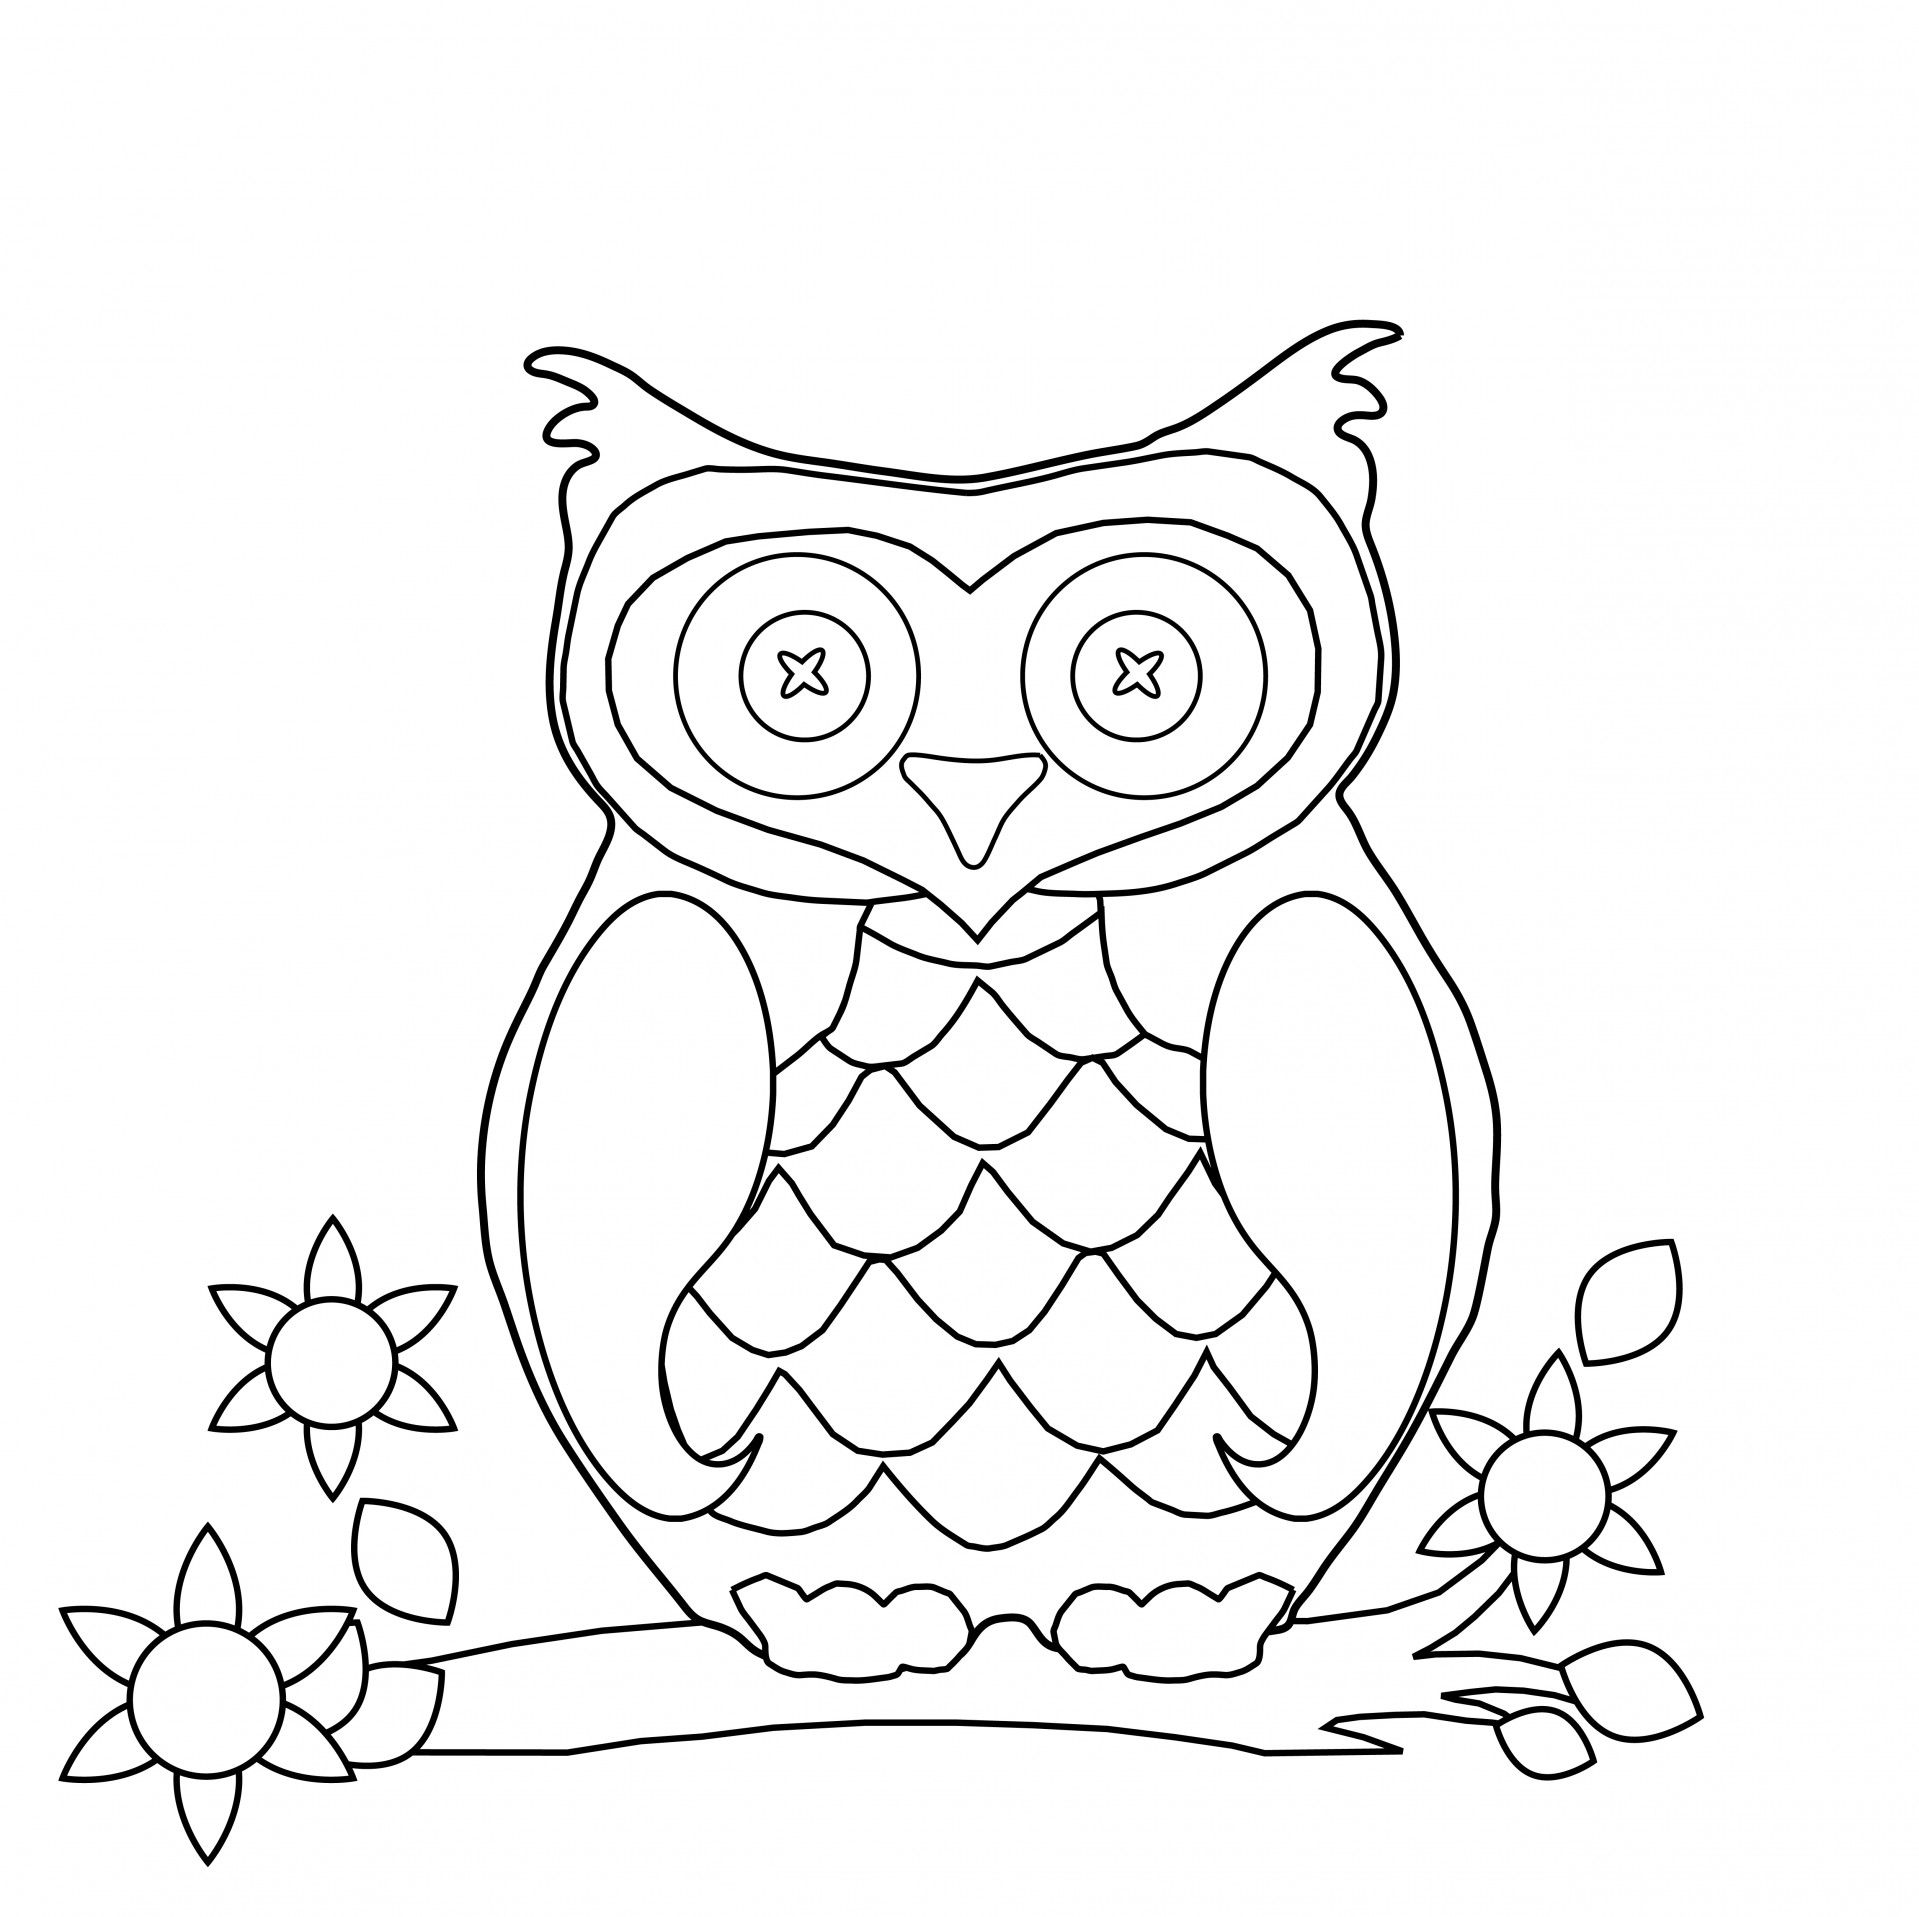 coloring prints free printable fantasy coloring pages for kids best coloring prints